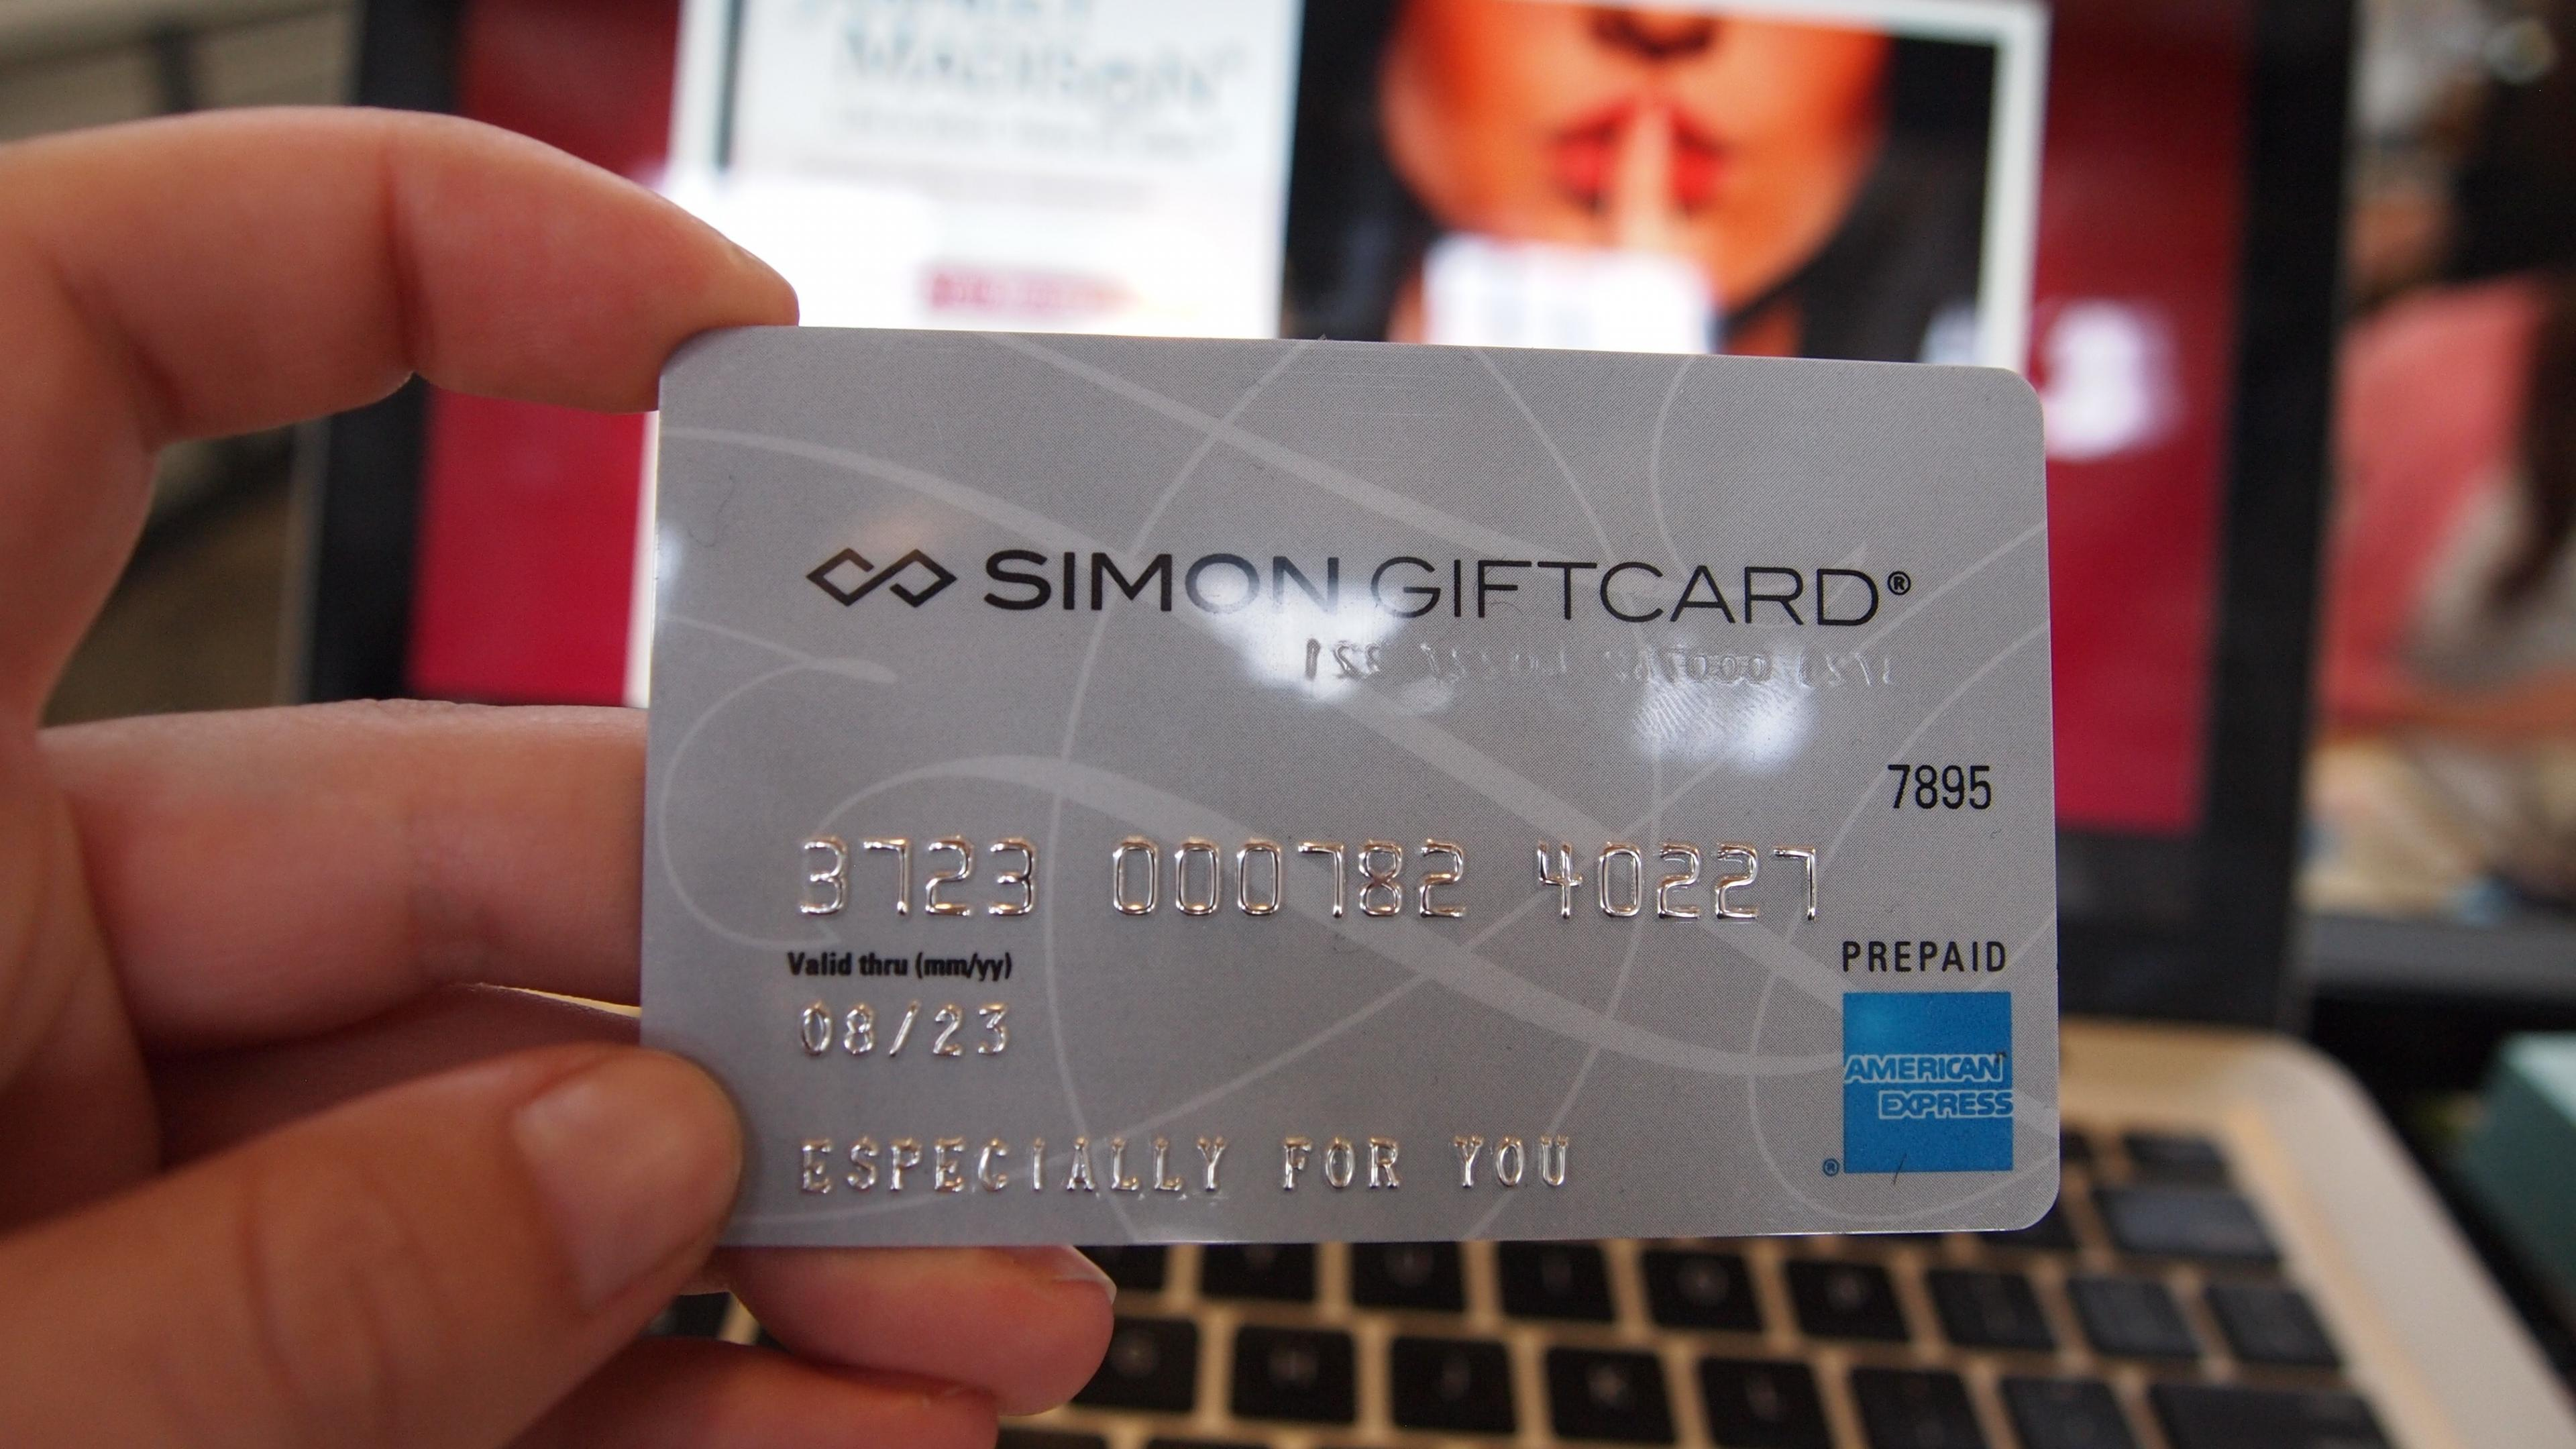 buy gift cards with credit card photo - 1